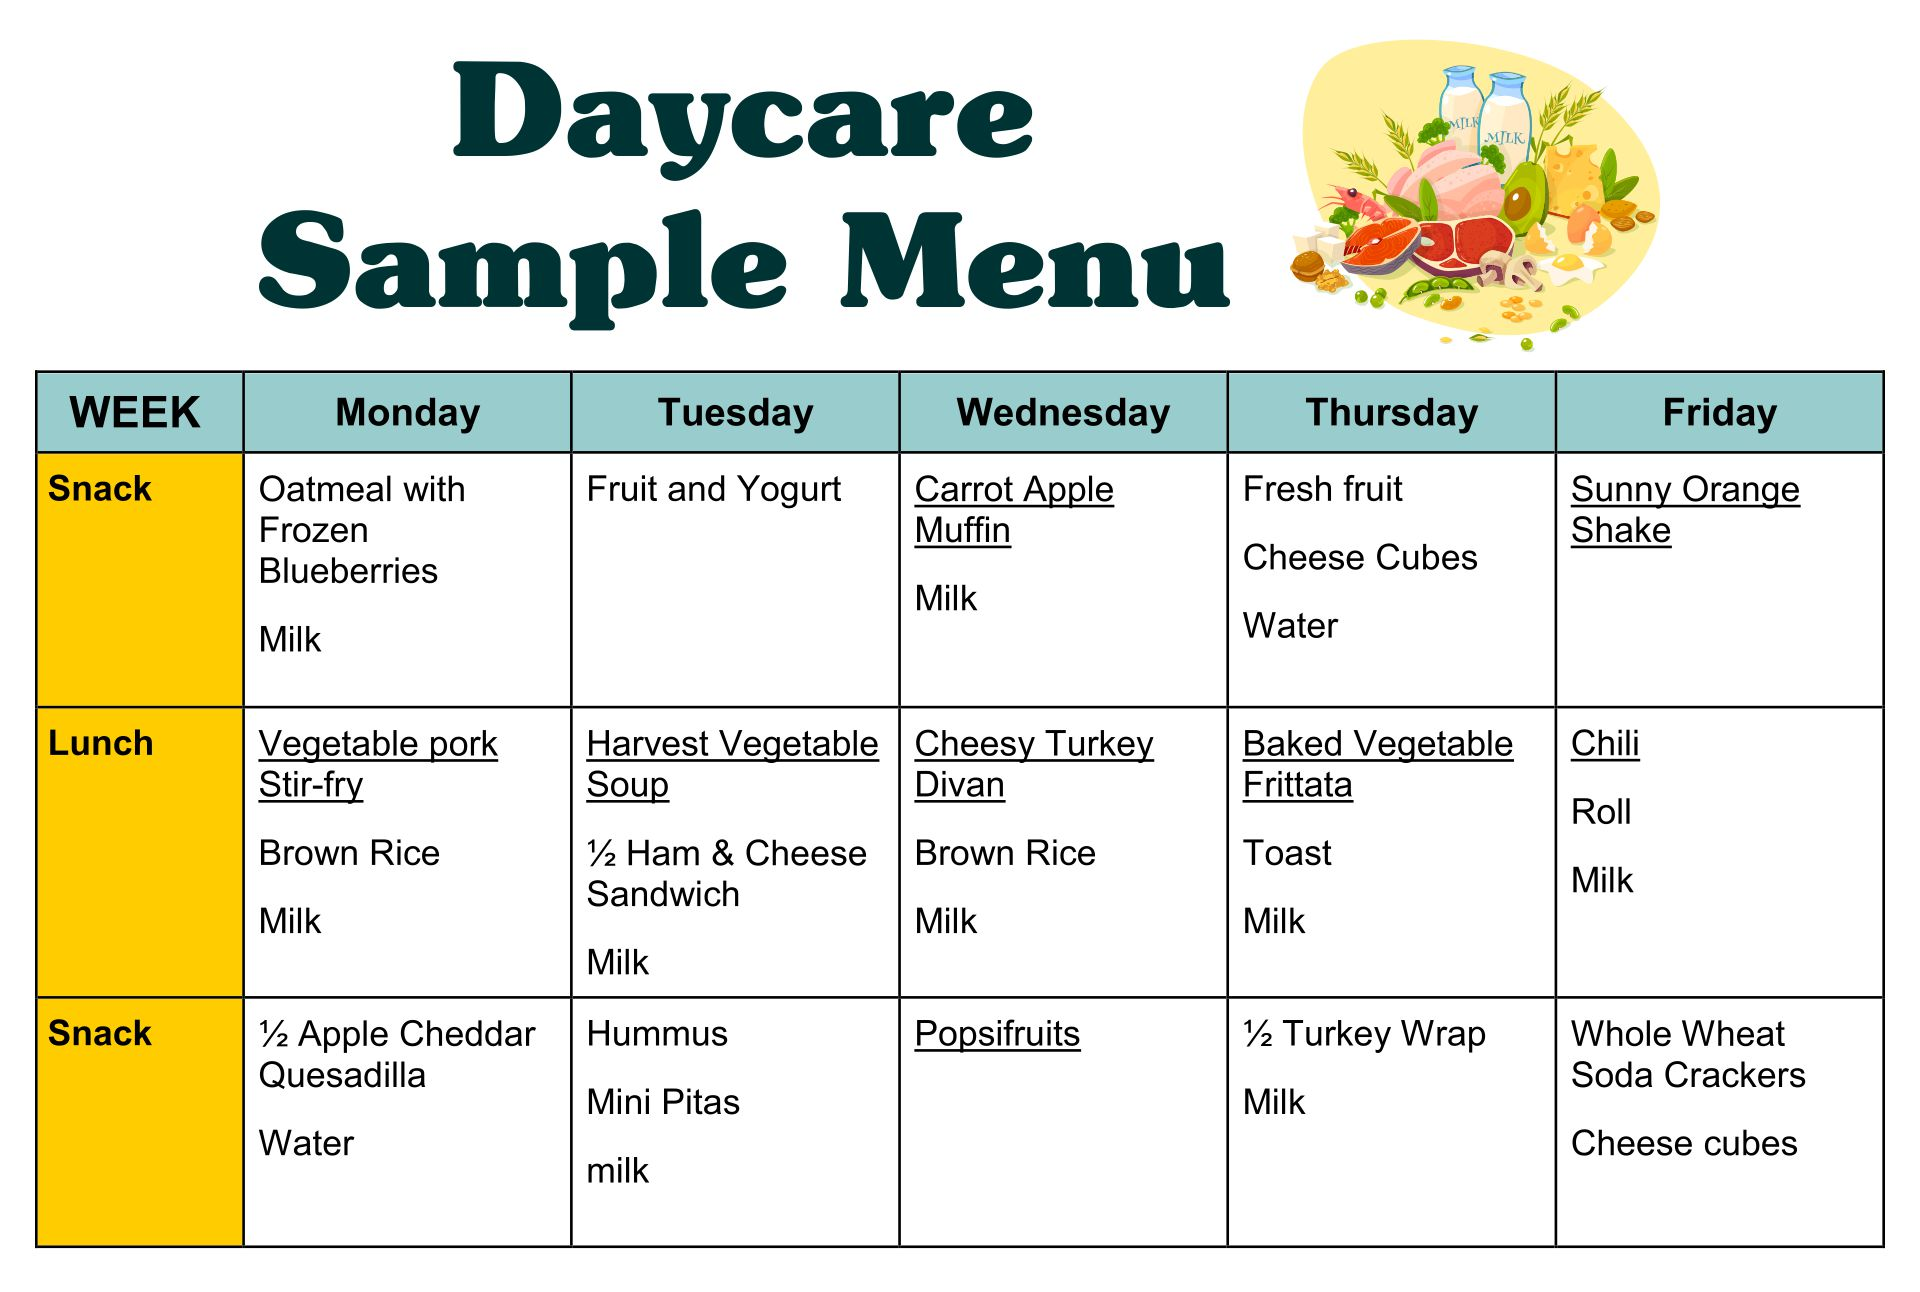 6 Best Images of Sample Daycare Menus Printable - Sample Daycare ...